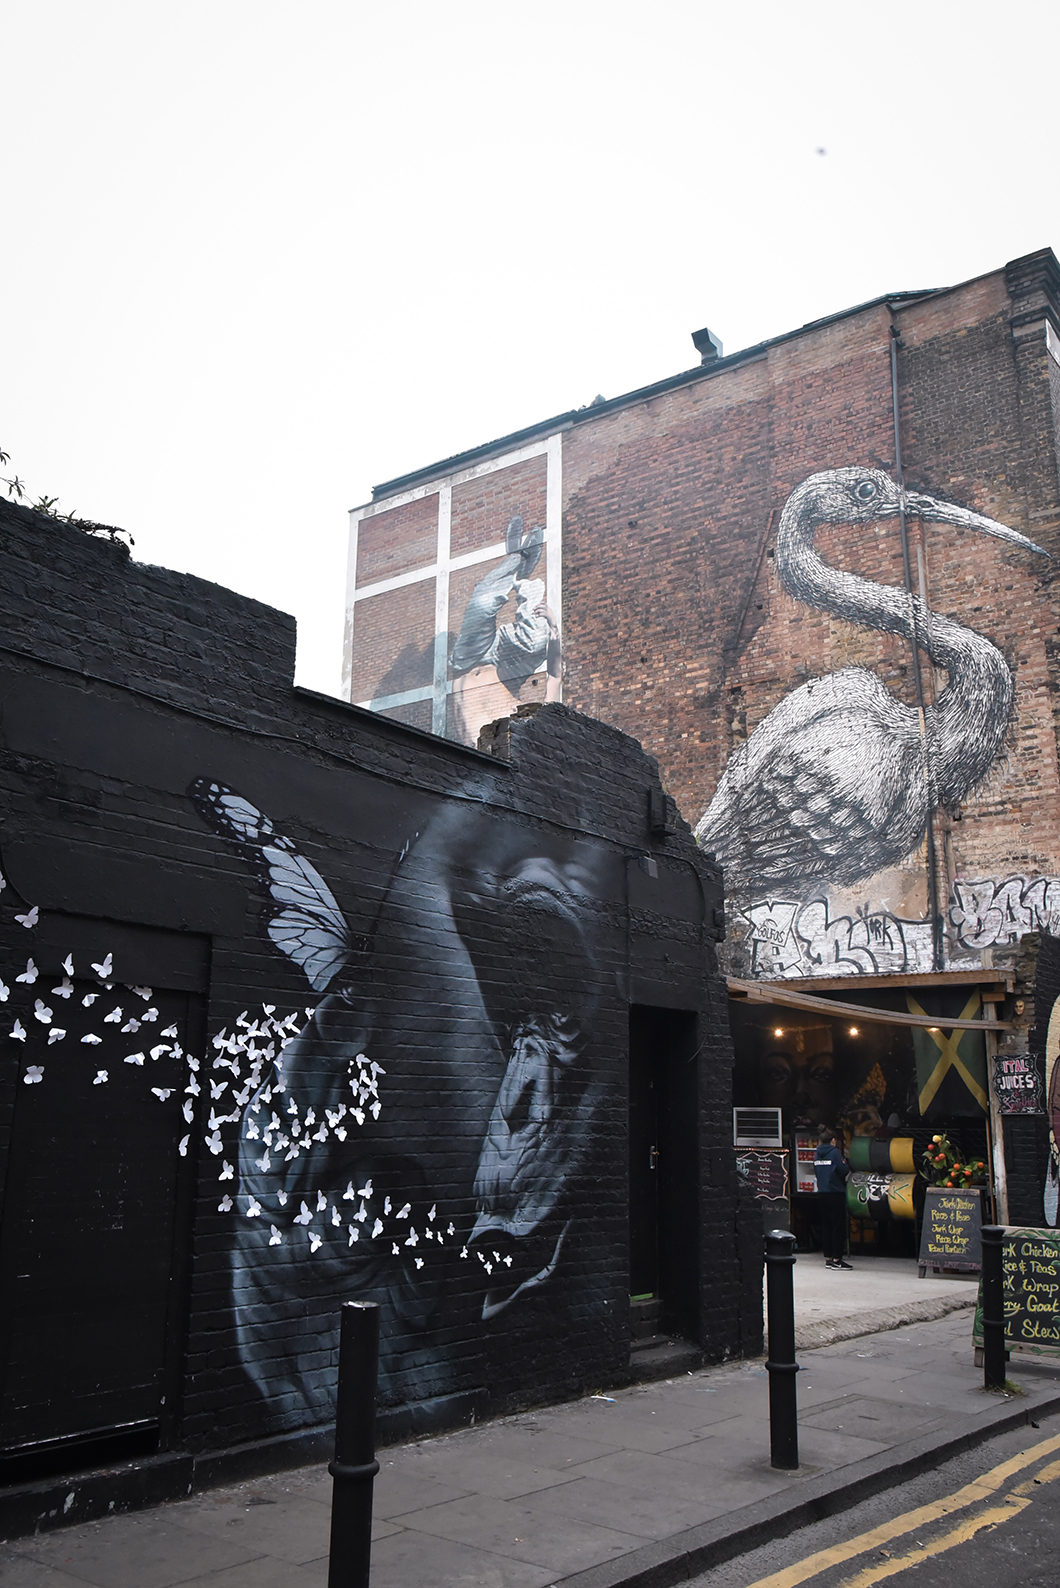 Les plus eaux street art de Londres